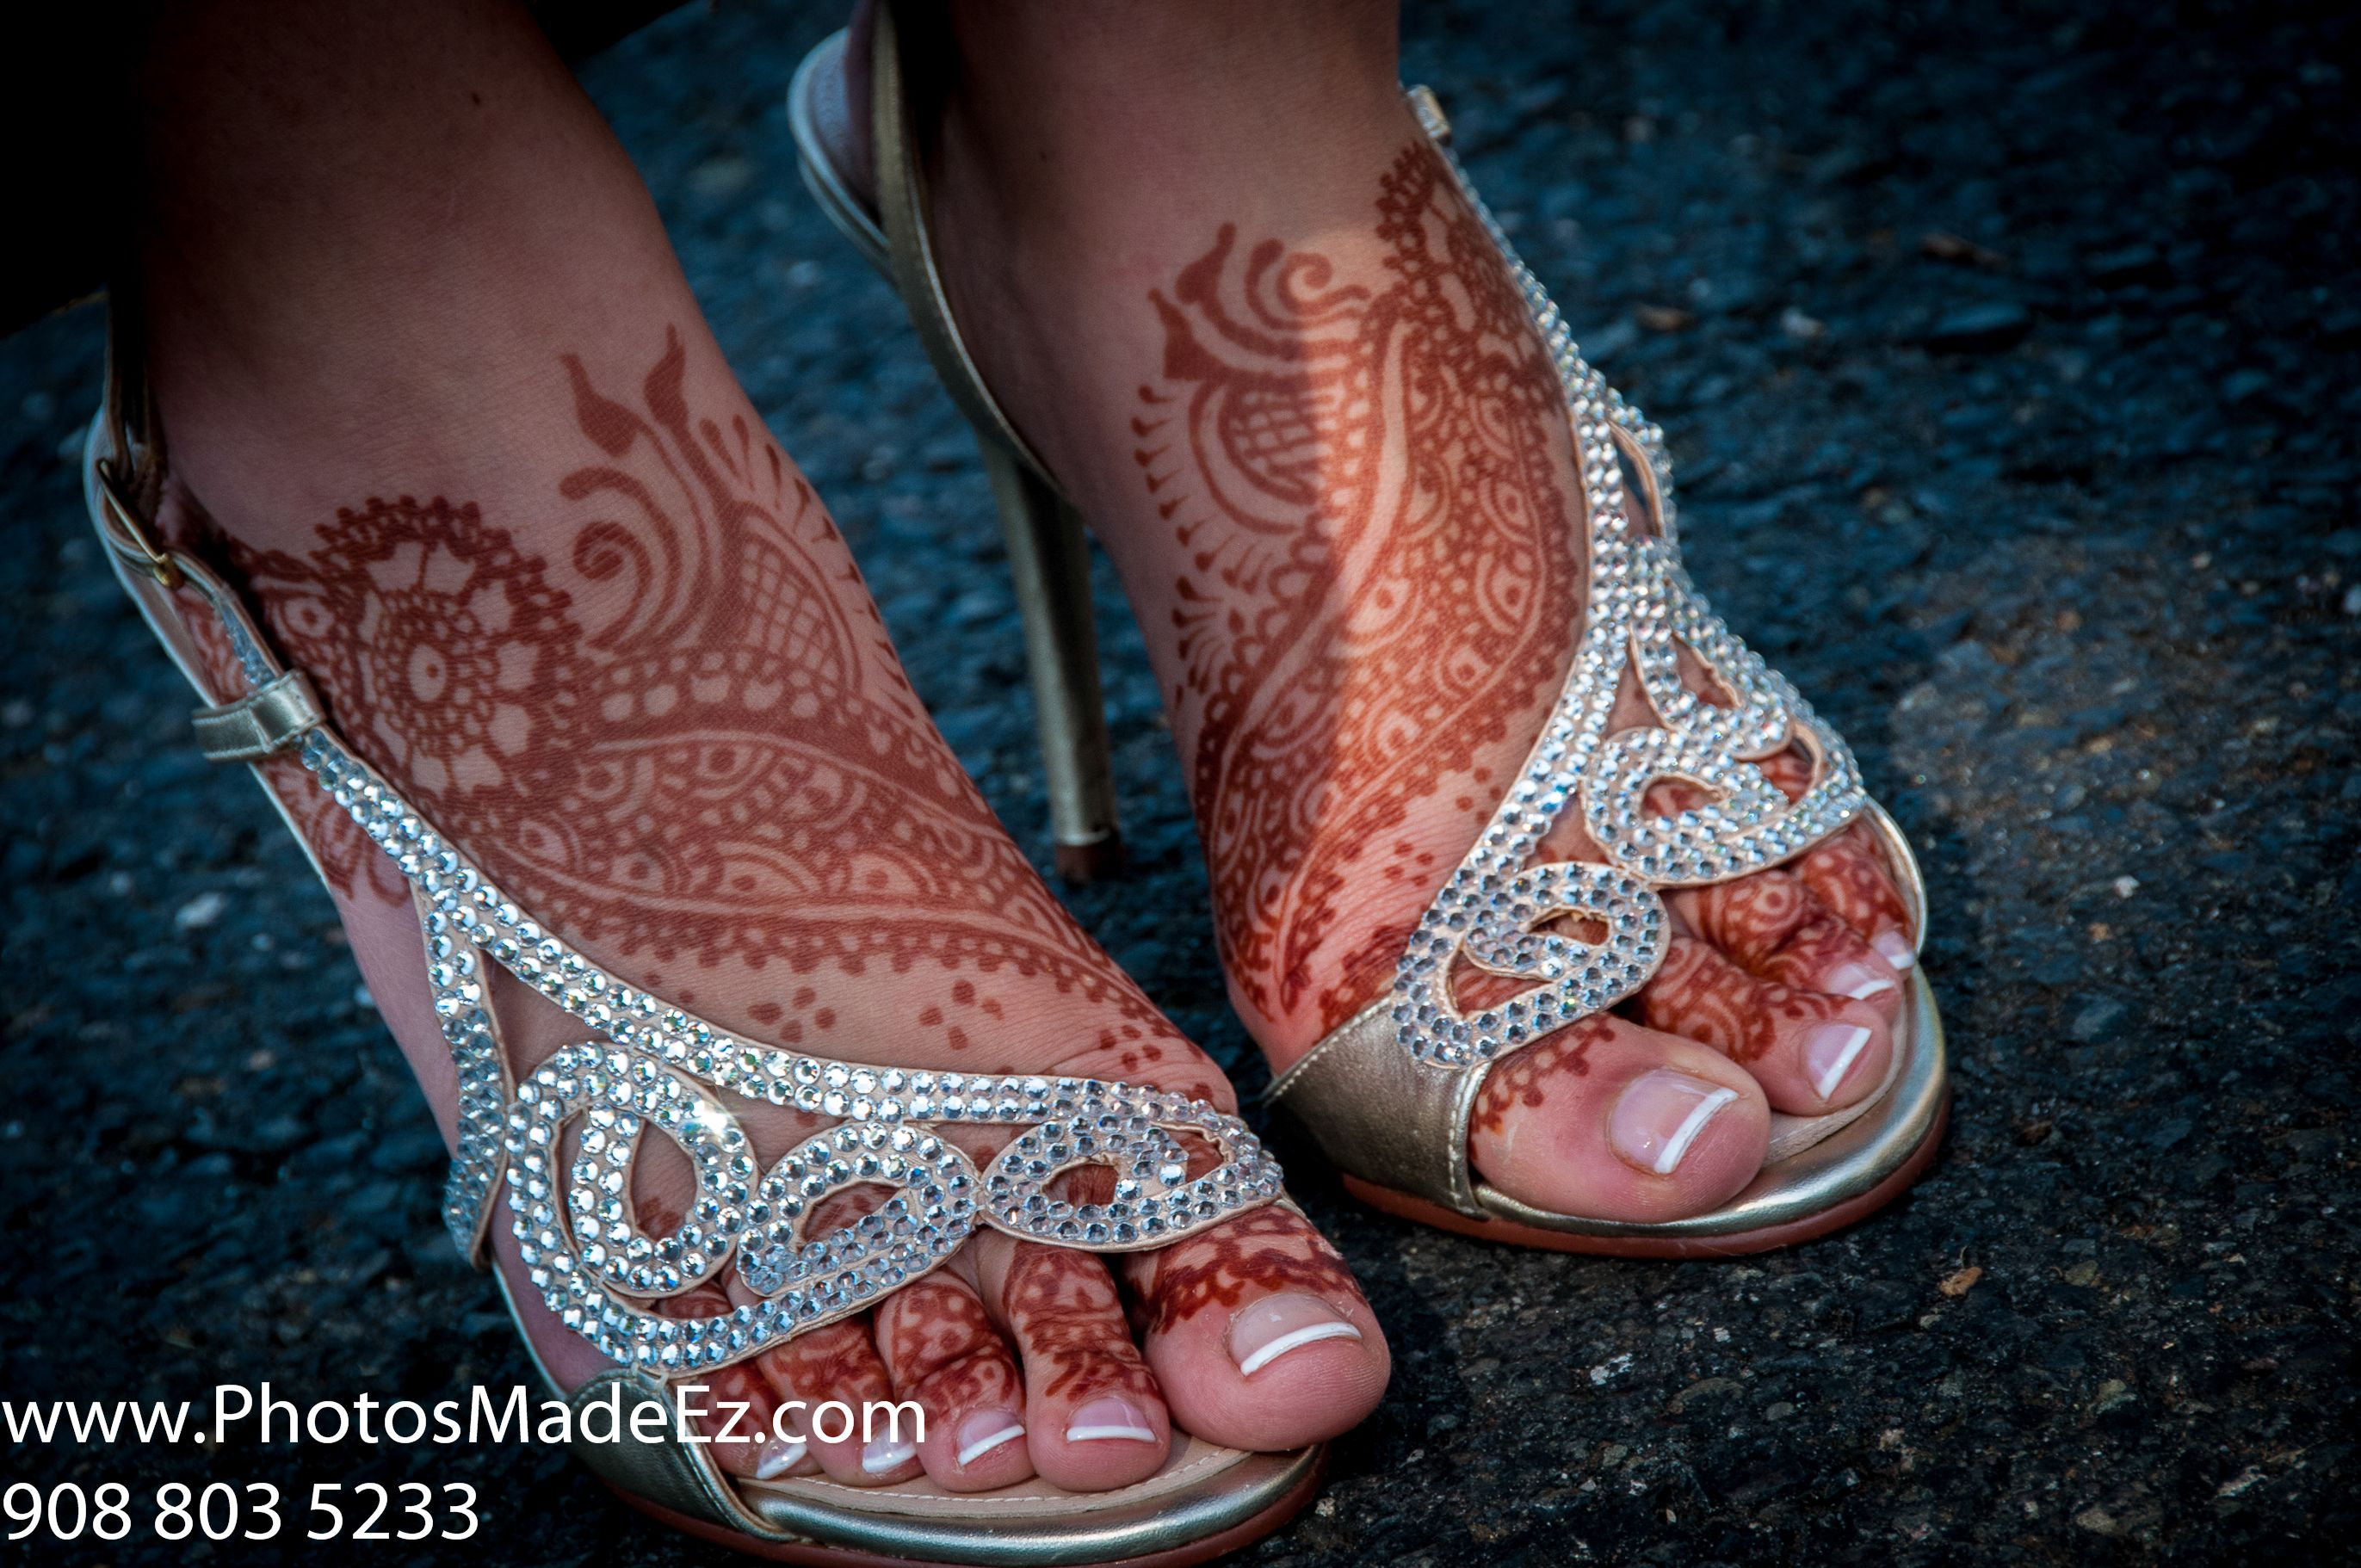 Hindu-Christain/Interfaith/Mixed Wedding in Bridgewater Marriott in NJ by PhotosMadeEz with Make up artist Mercedes, Mandaps by Dhoom, DJ Deesh, Rasoi Catering.